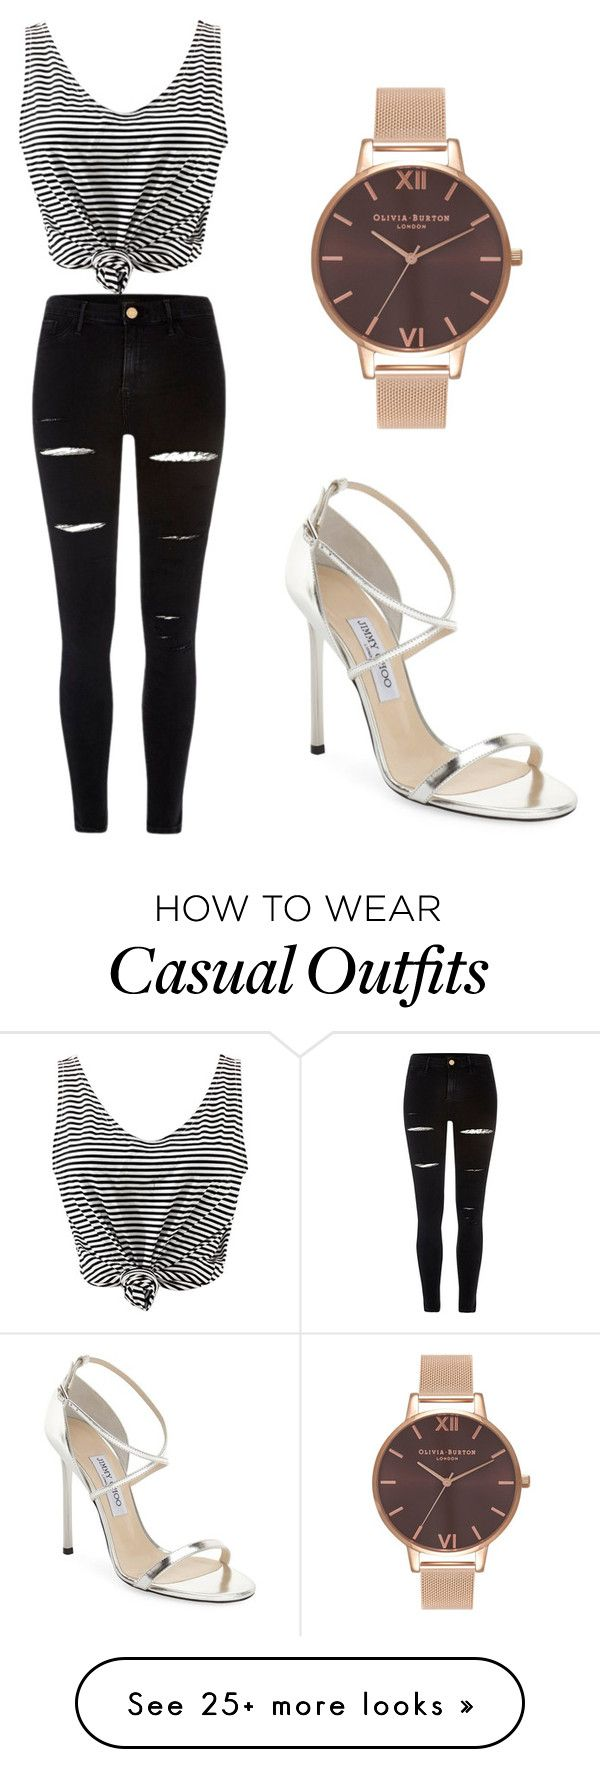 """""""Casual yet classy"""" by saritasarita21 on Polyvore featuring WithChic, Jimmy Choo, Olivia Burton and River Island"""